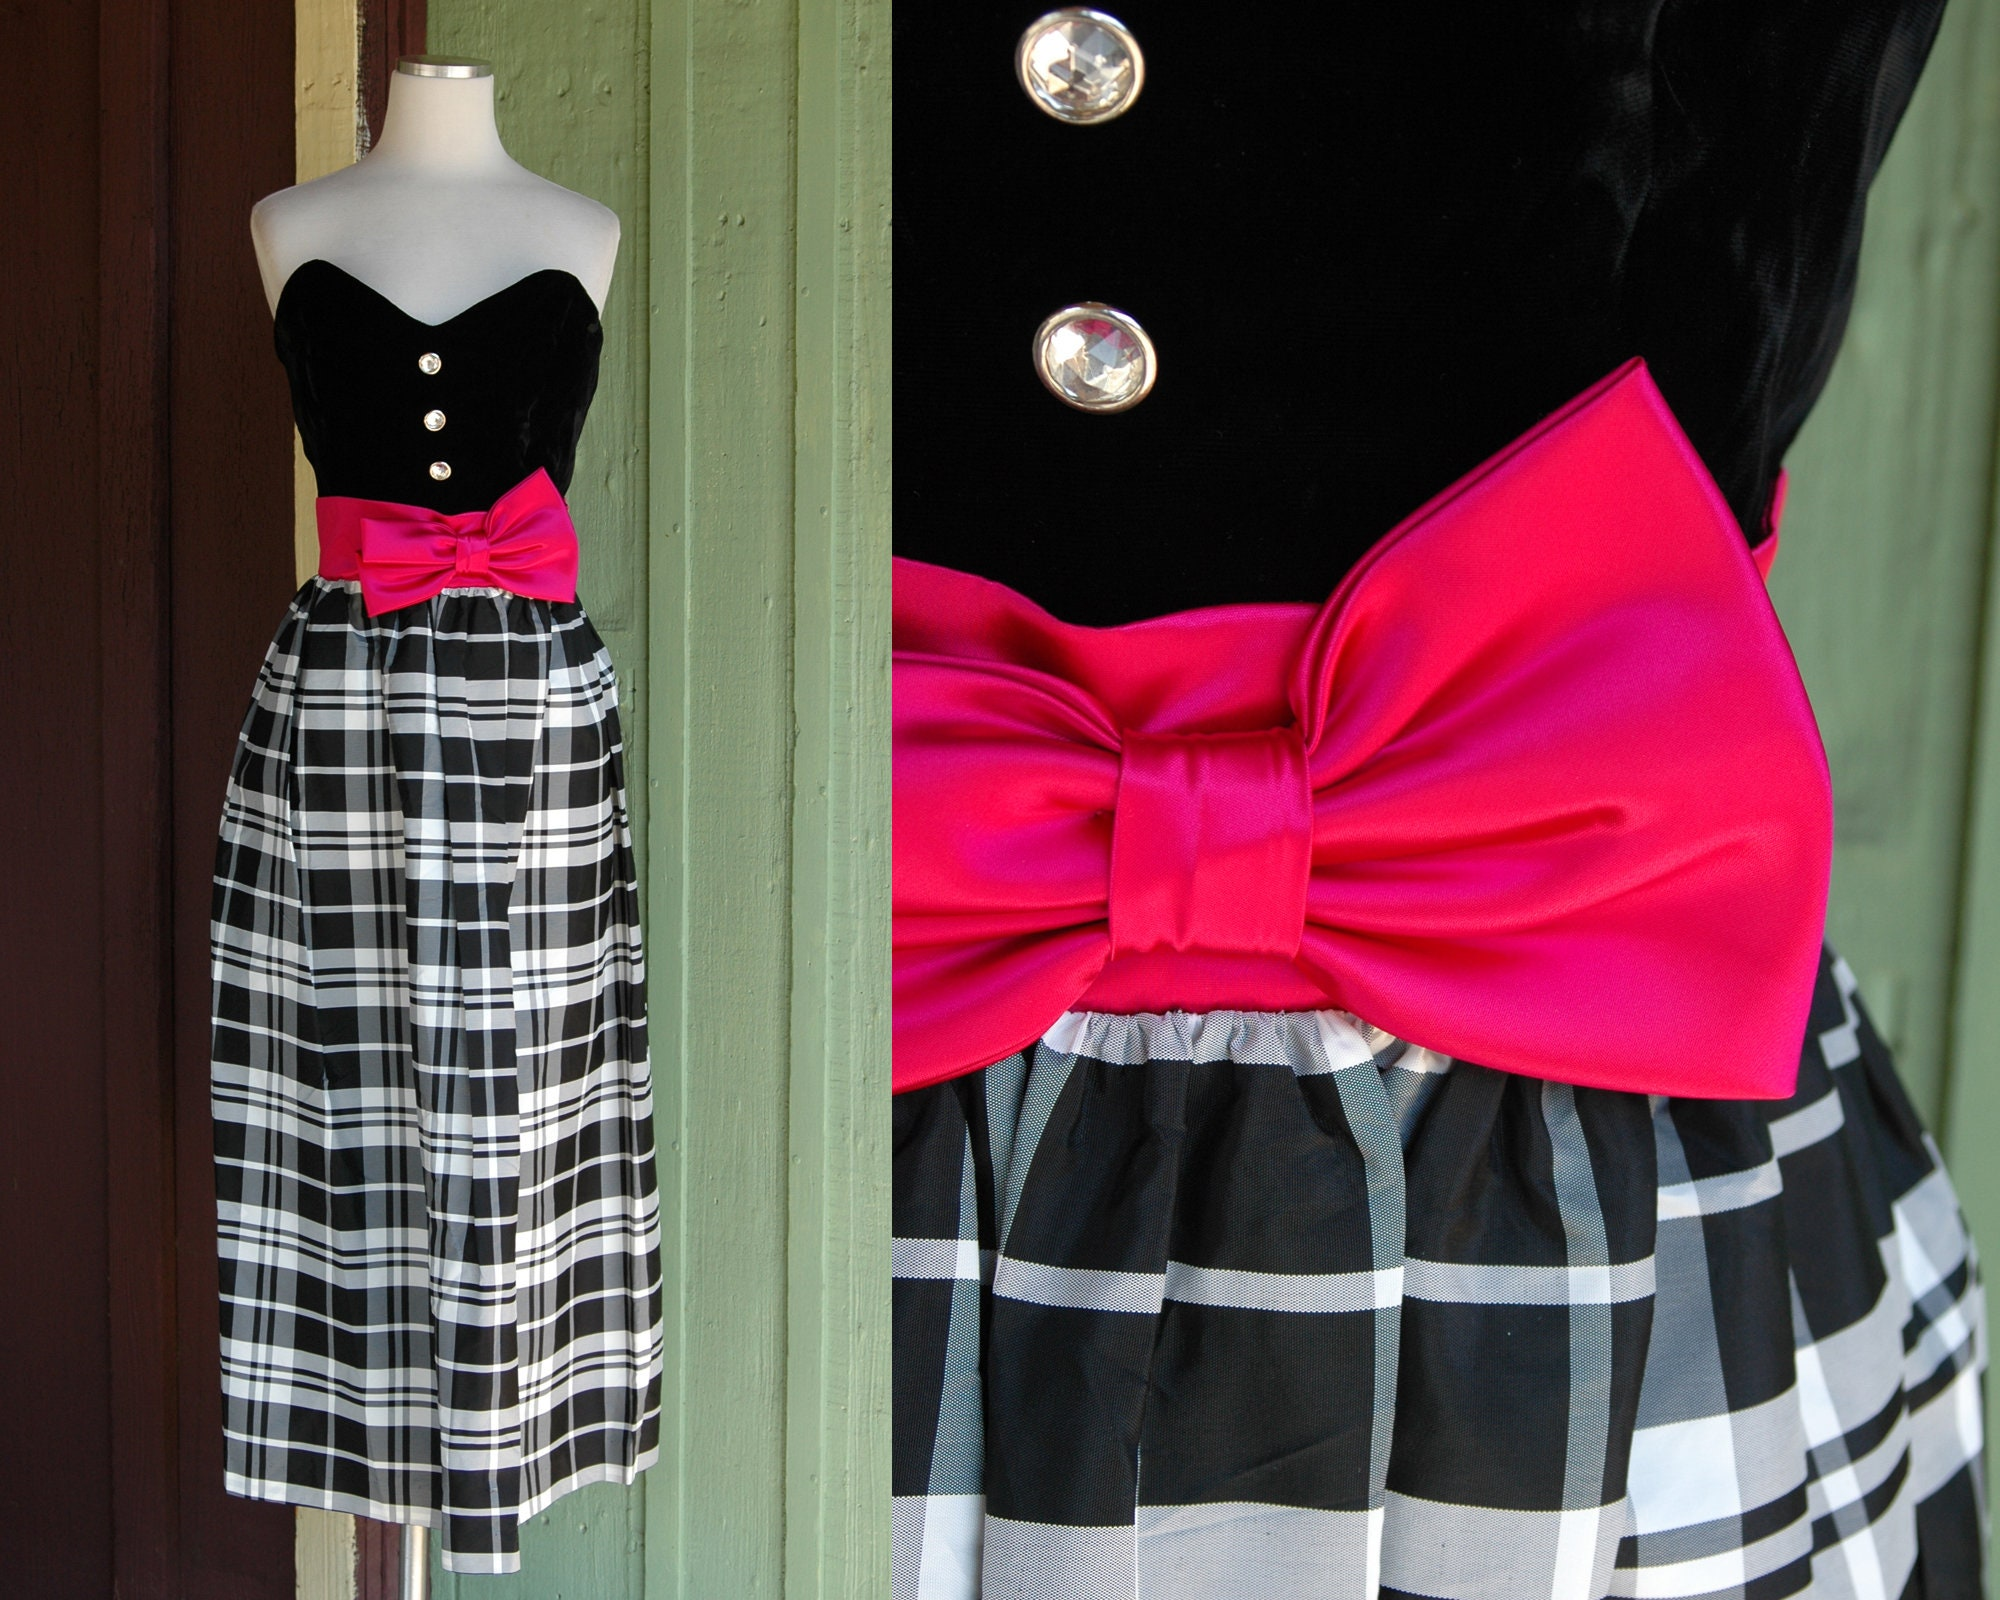 80s Dresses | Casual to Party Dresses Holiday 1980S Black Velvet Sweetheart  White Checked Formal Gown With Pink Satin Belt Bow 80S Plaid Party Dress By Positively Ellyn $0.00 AT vintagedancer.com